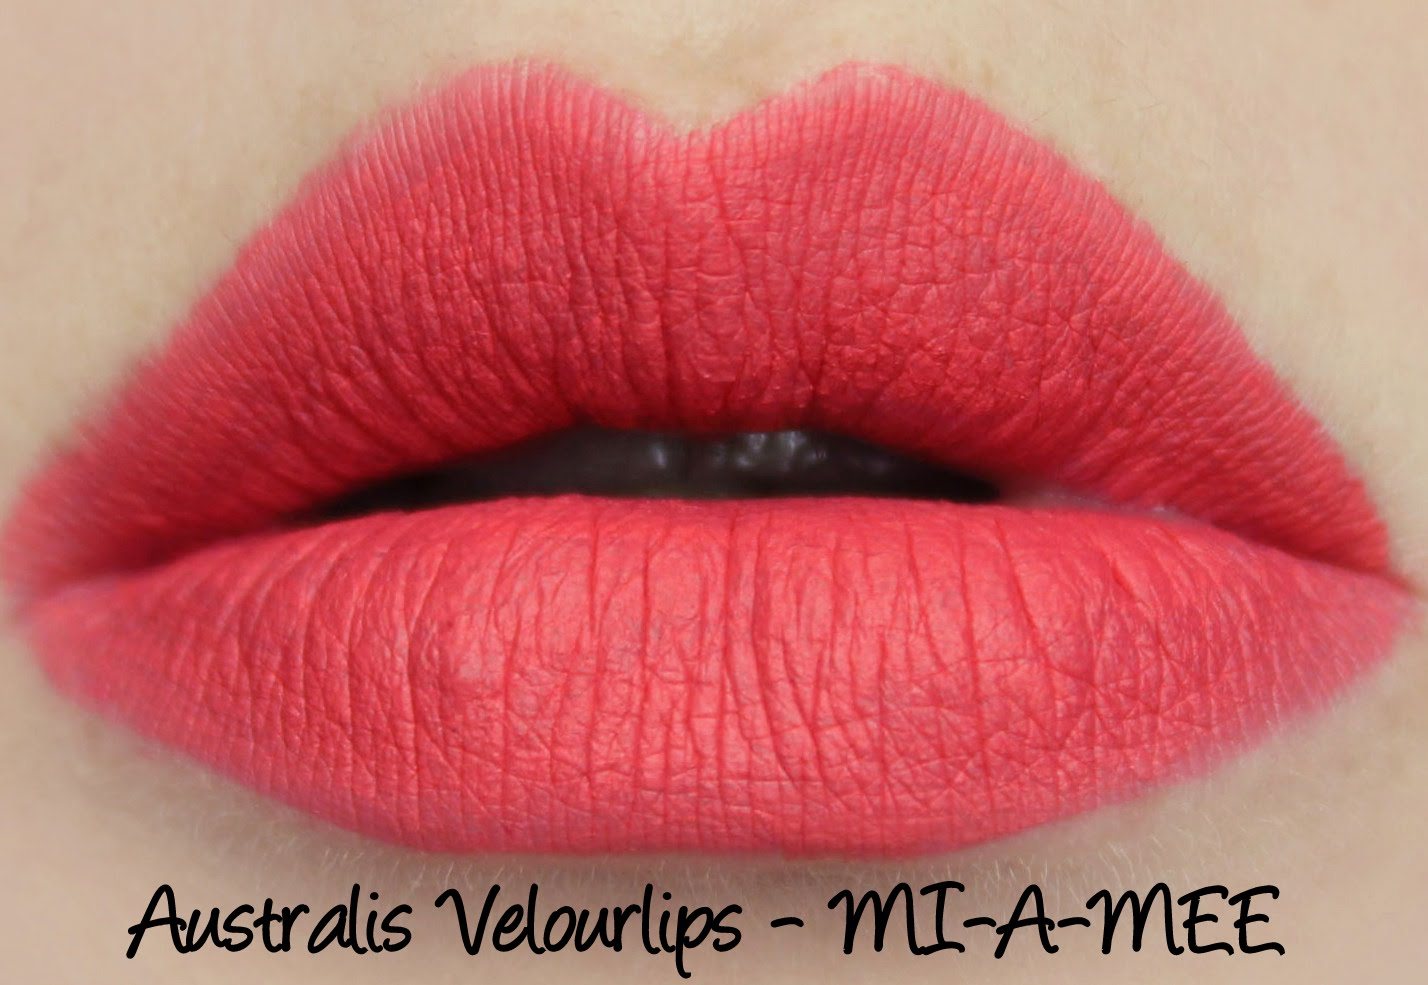 Australis Velourlips Matte Lip Cream - MI-A-MEE Swatches & Review